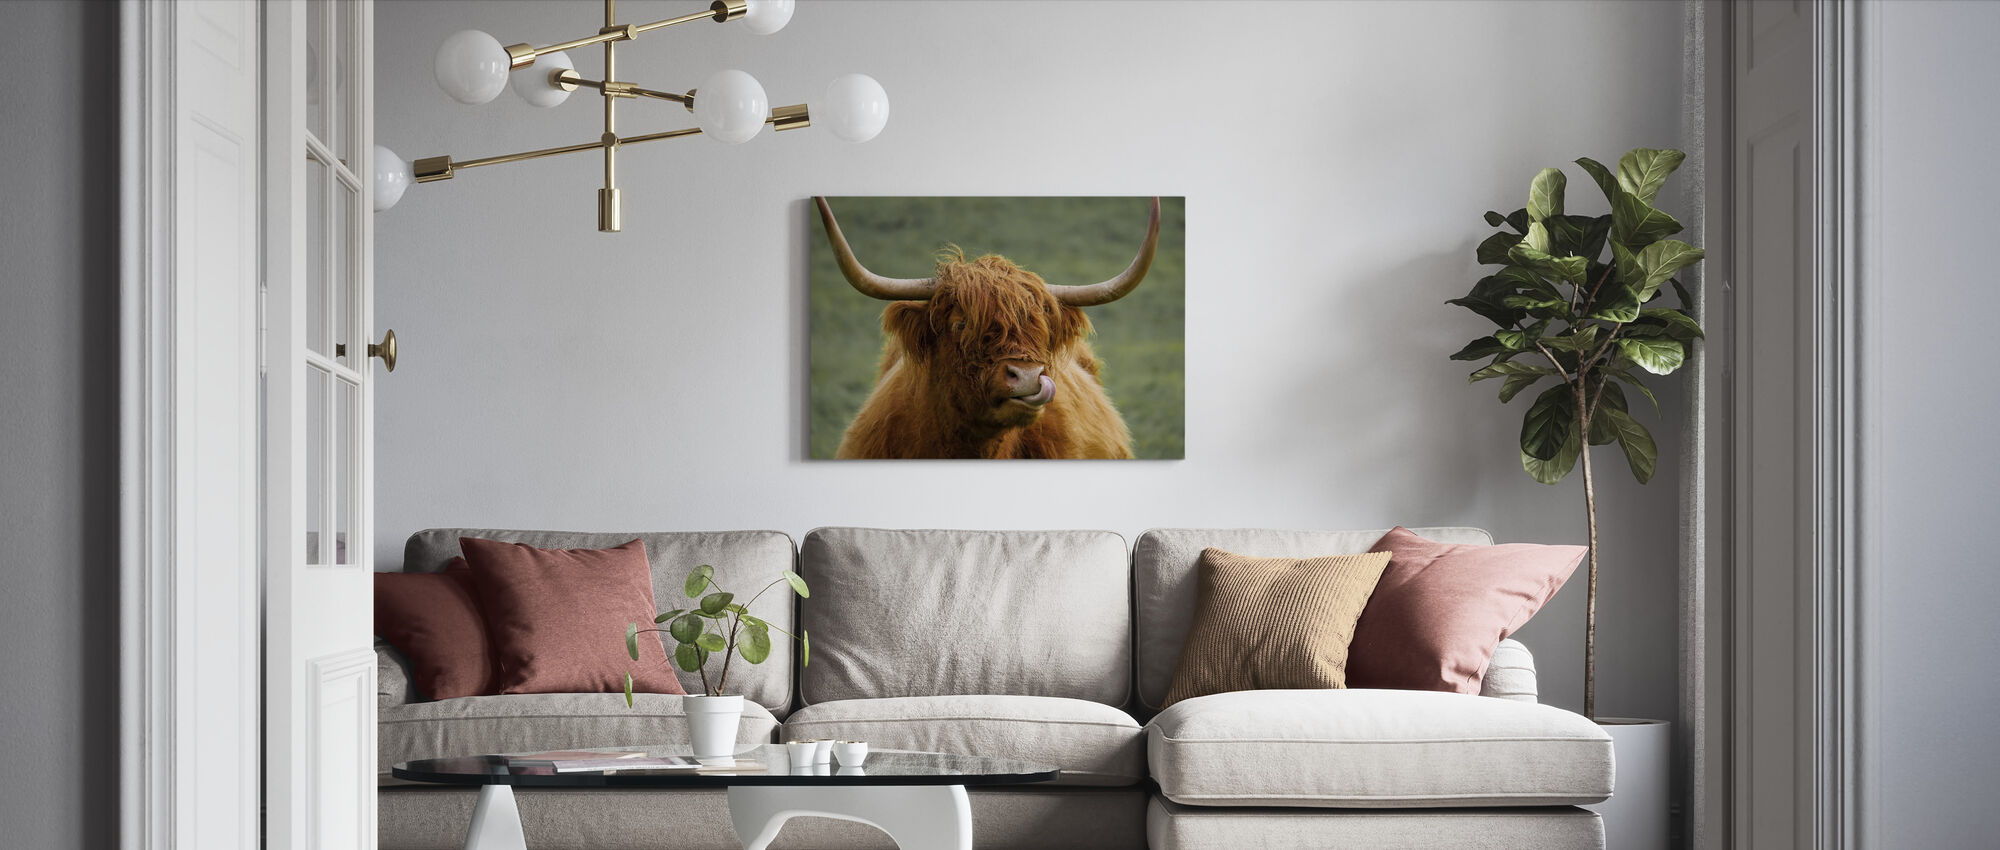 Highland Cattle - Canvas print - Living Room